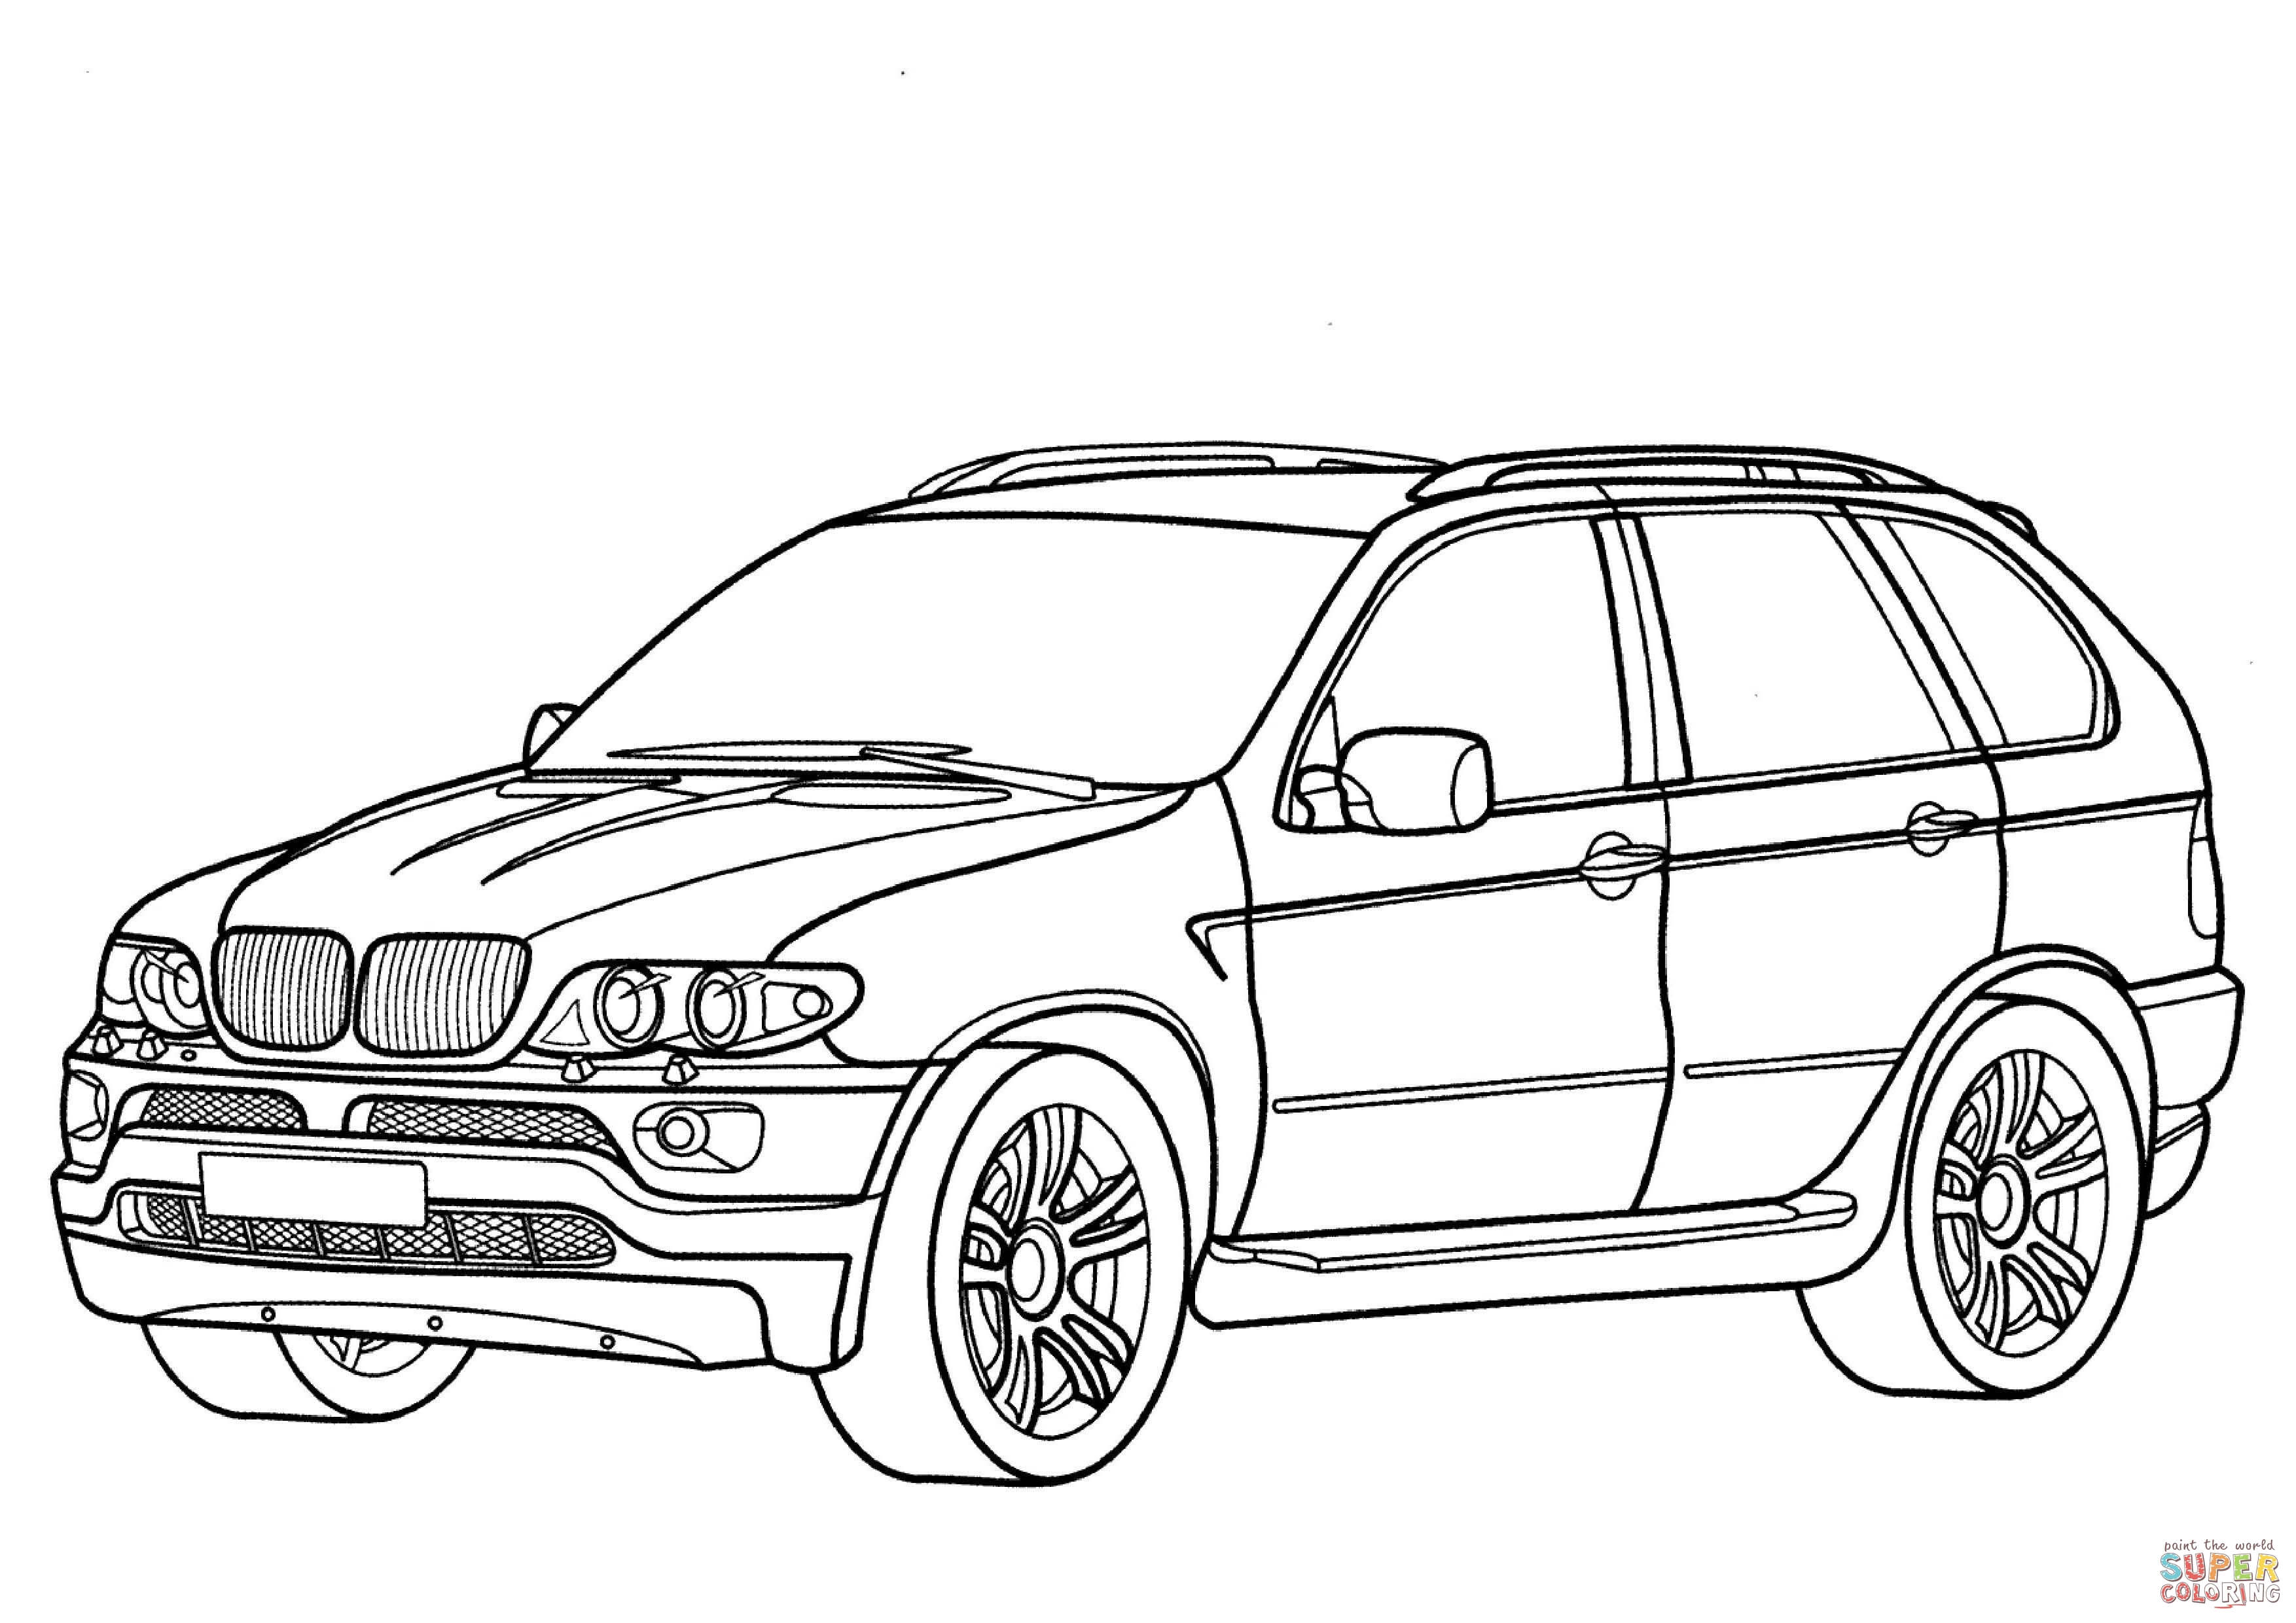 Bmw coloring pages to download and print for free